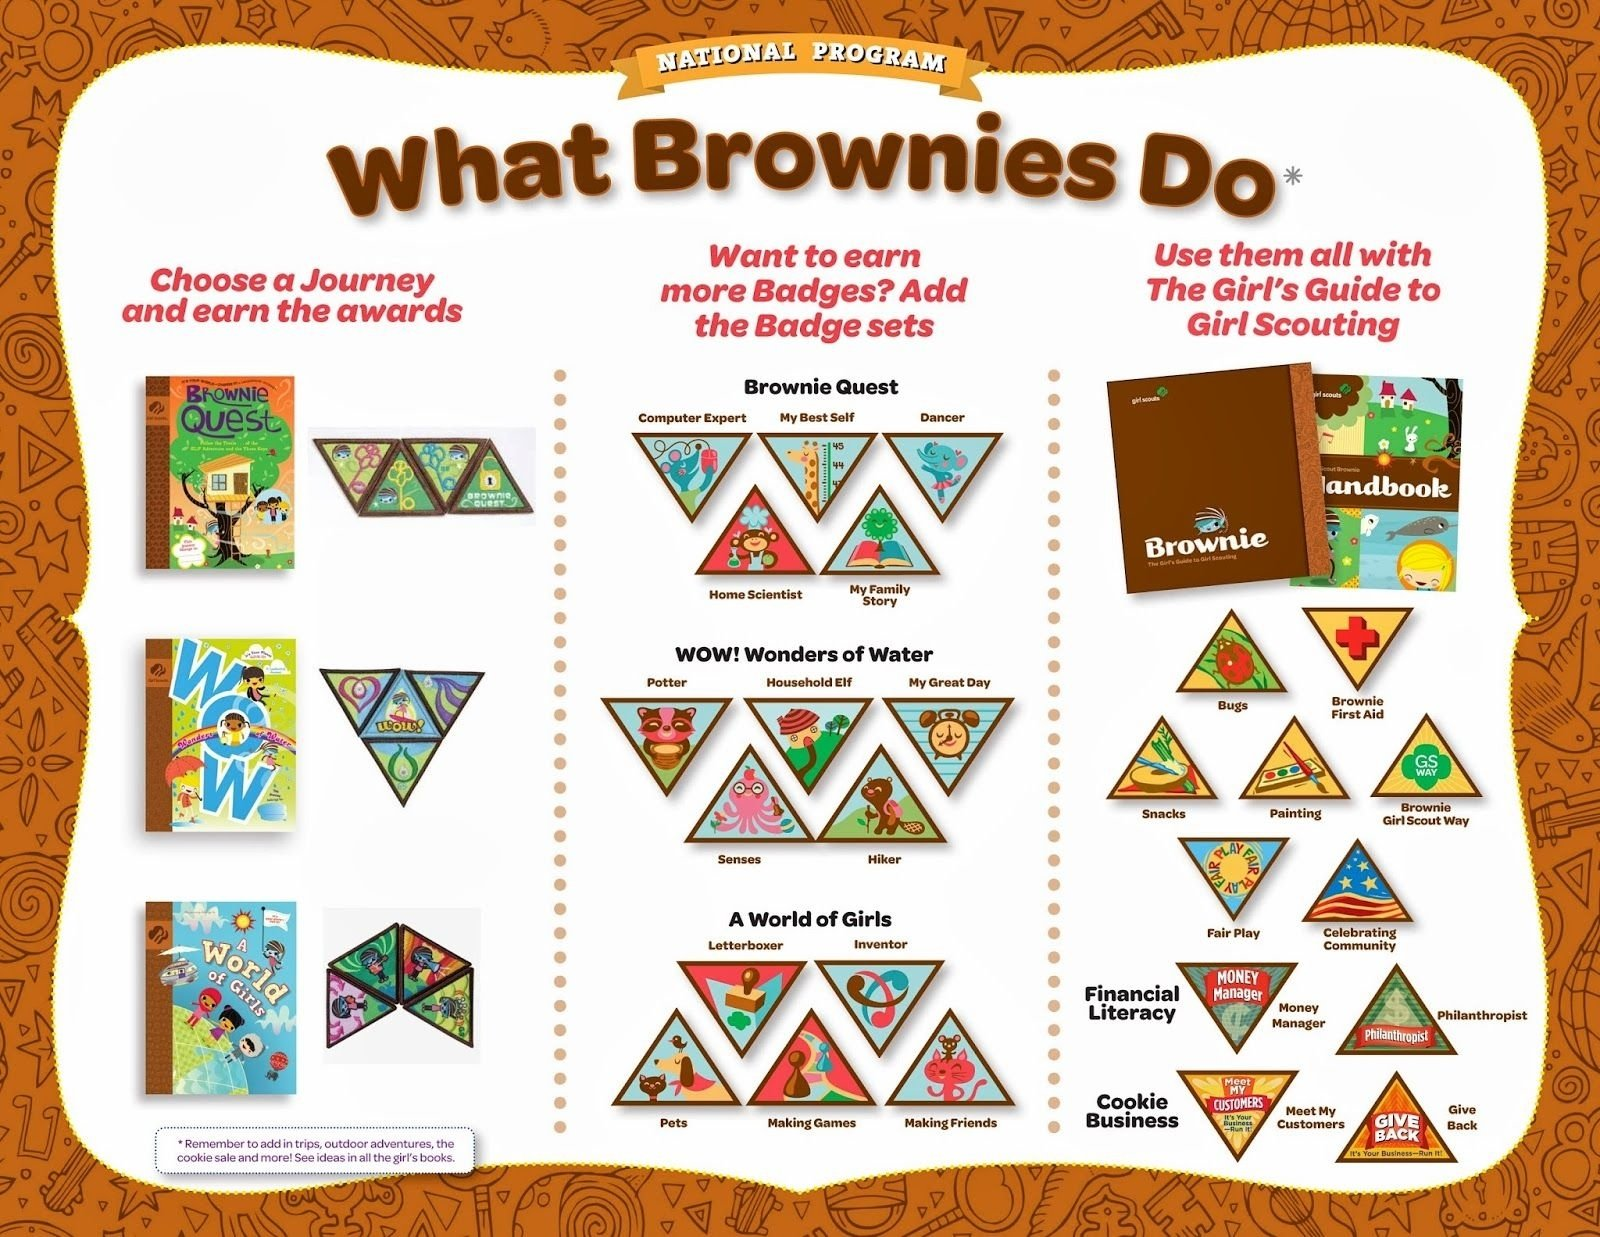 10 Fabulous Girl Scout Brownie Meeting Ideas troop leader mom getting started with girl scout daisies brownies 2